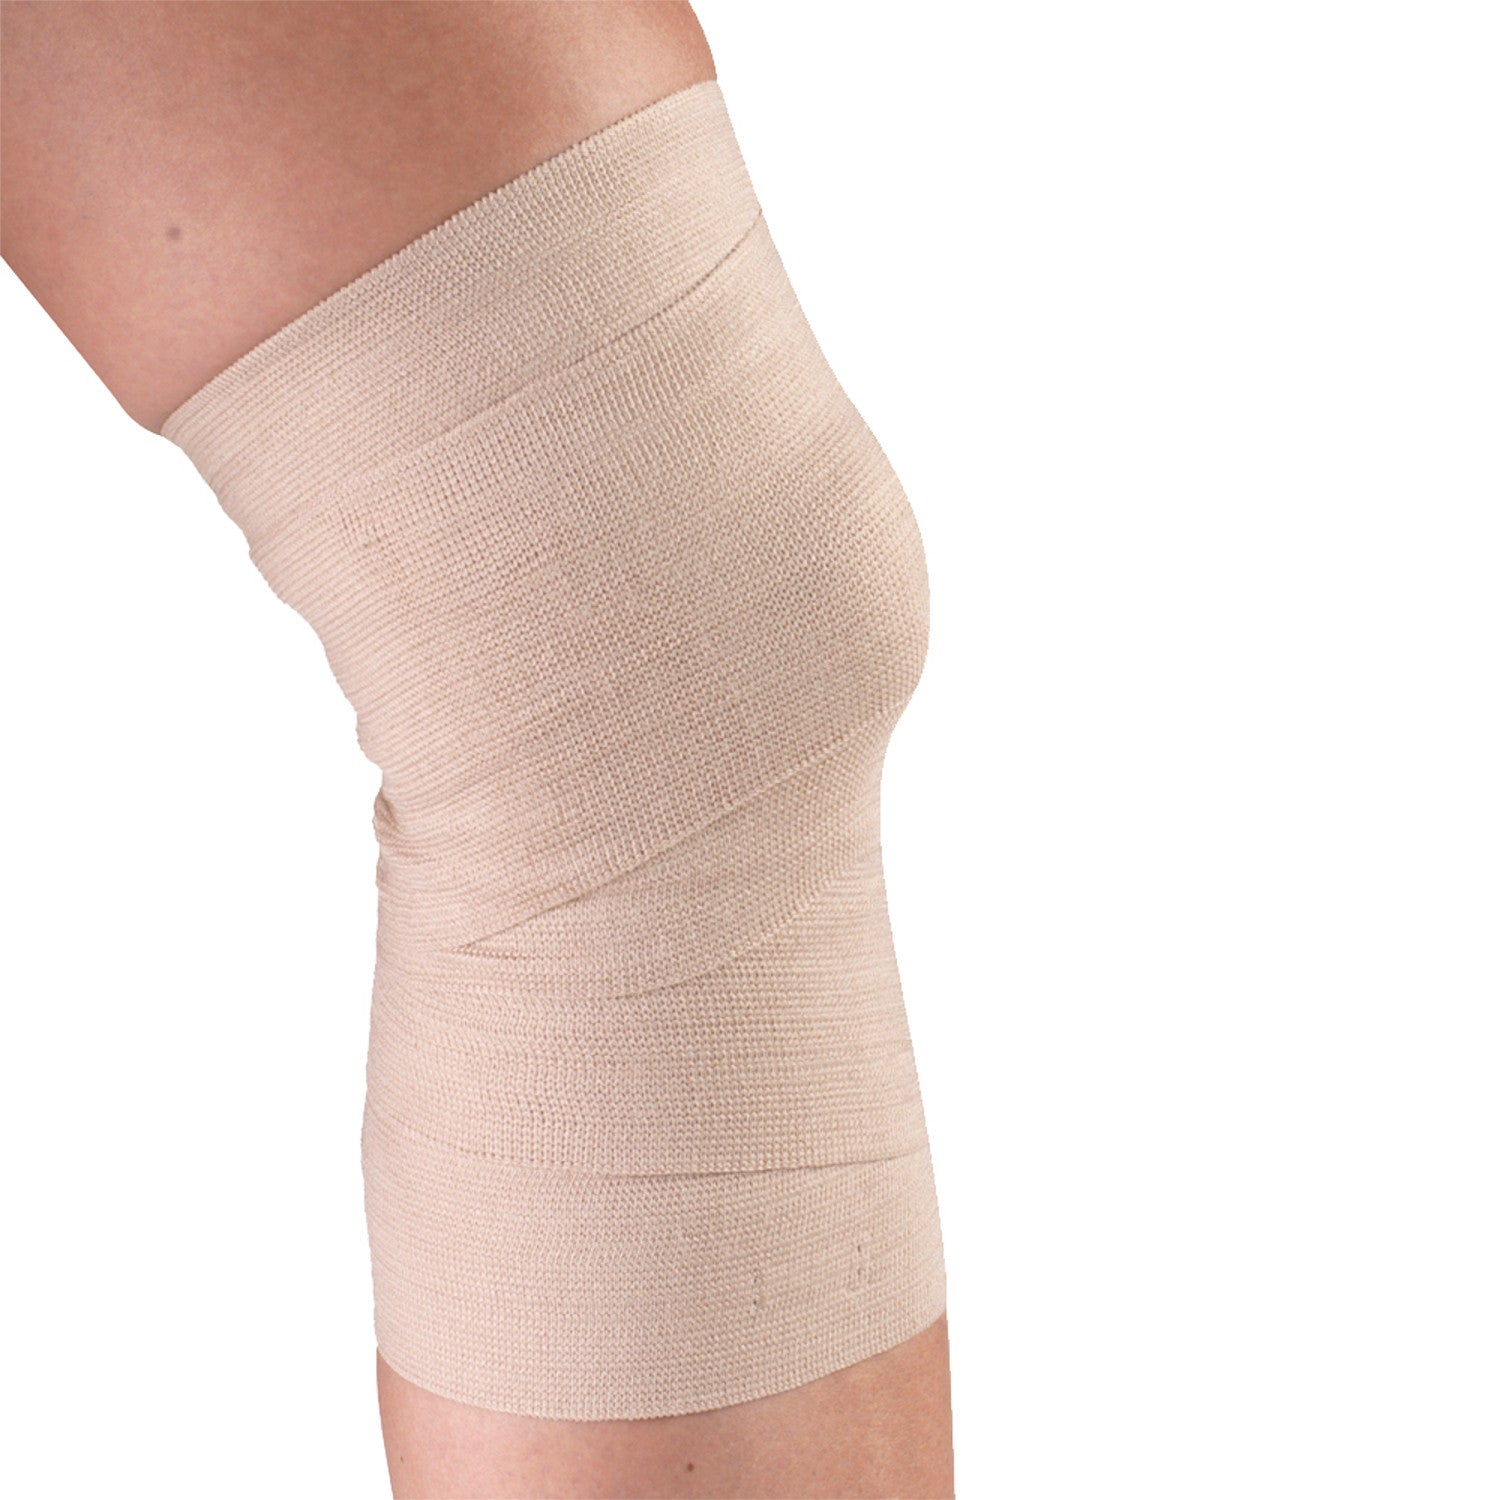 "4"" WIDE ELASTIC BANDAGE ON KNEE"